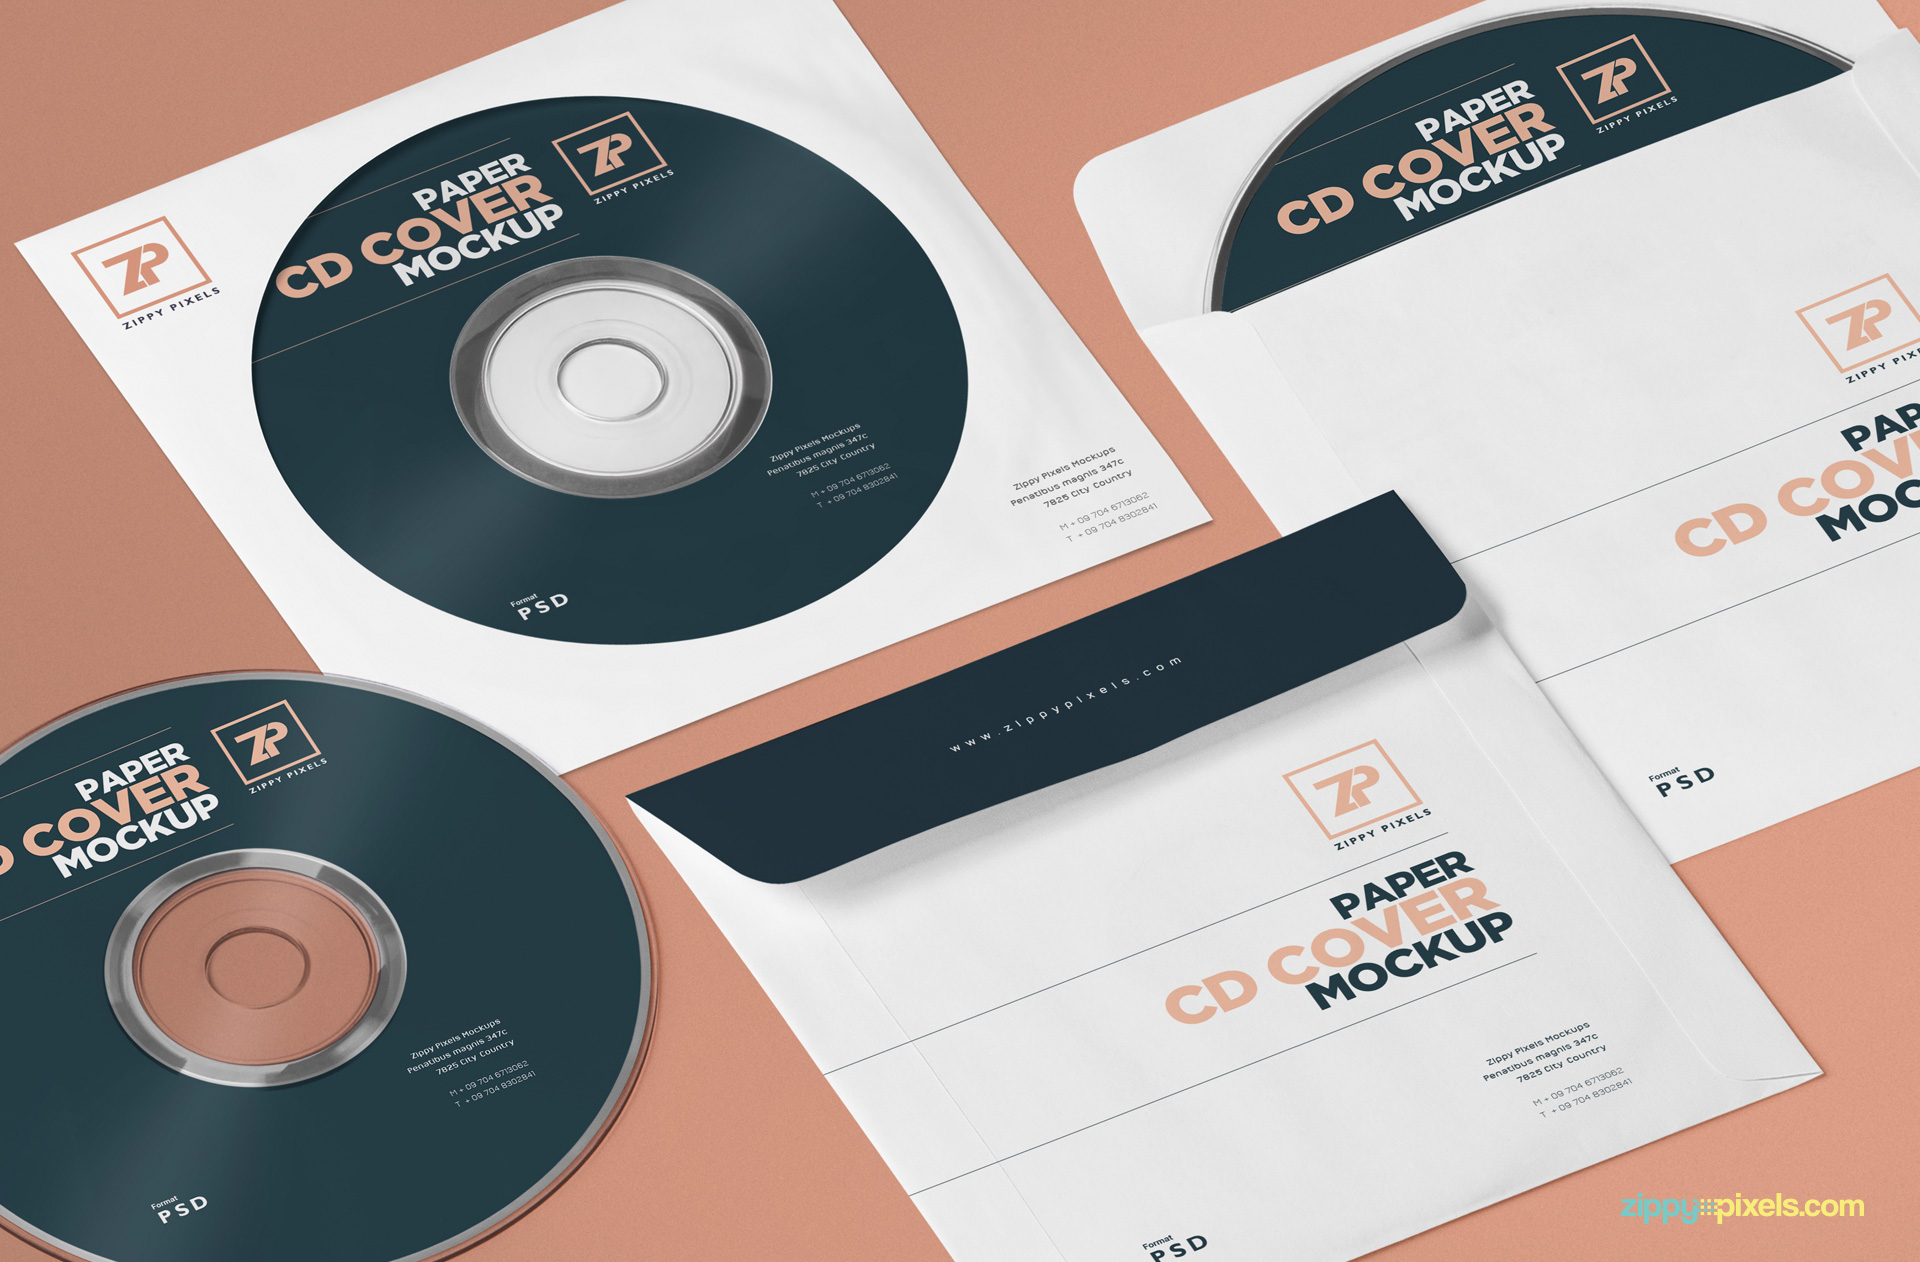 Free paper cover mockup for music album designs